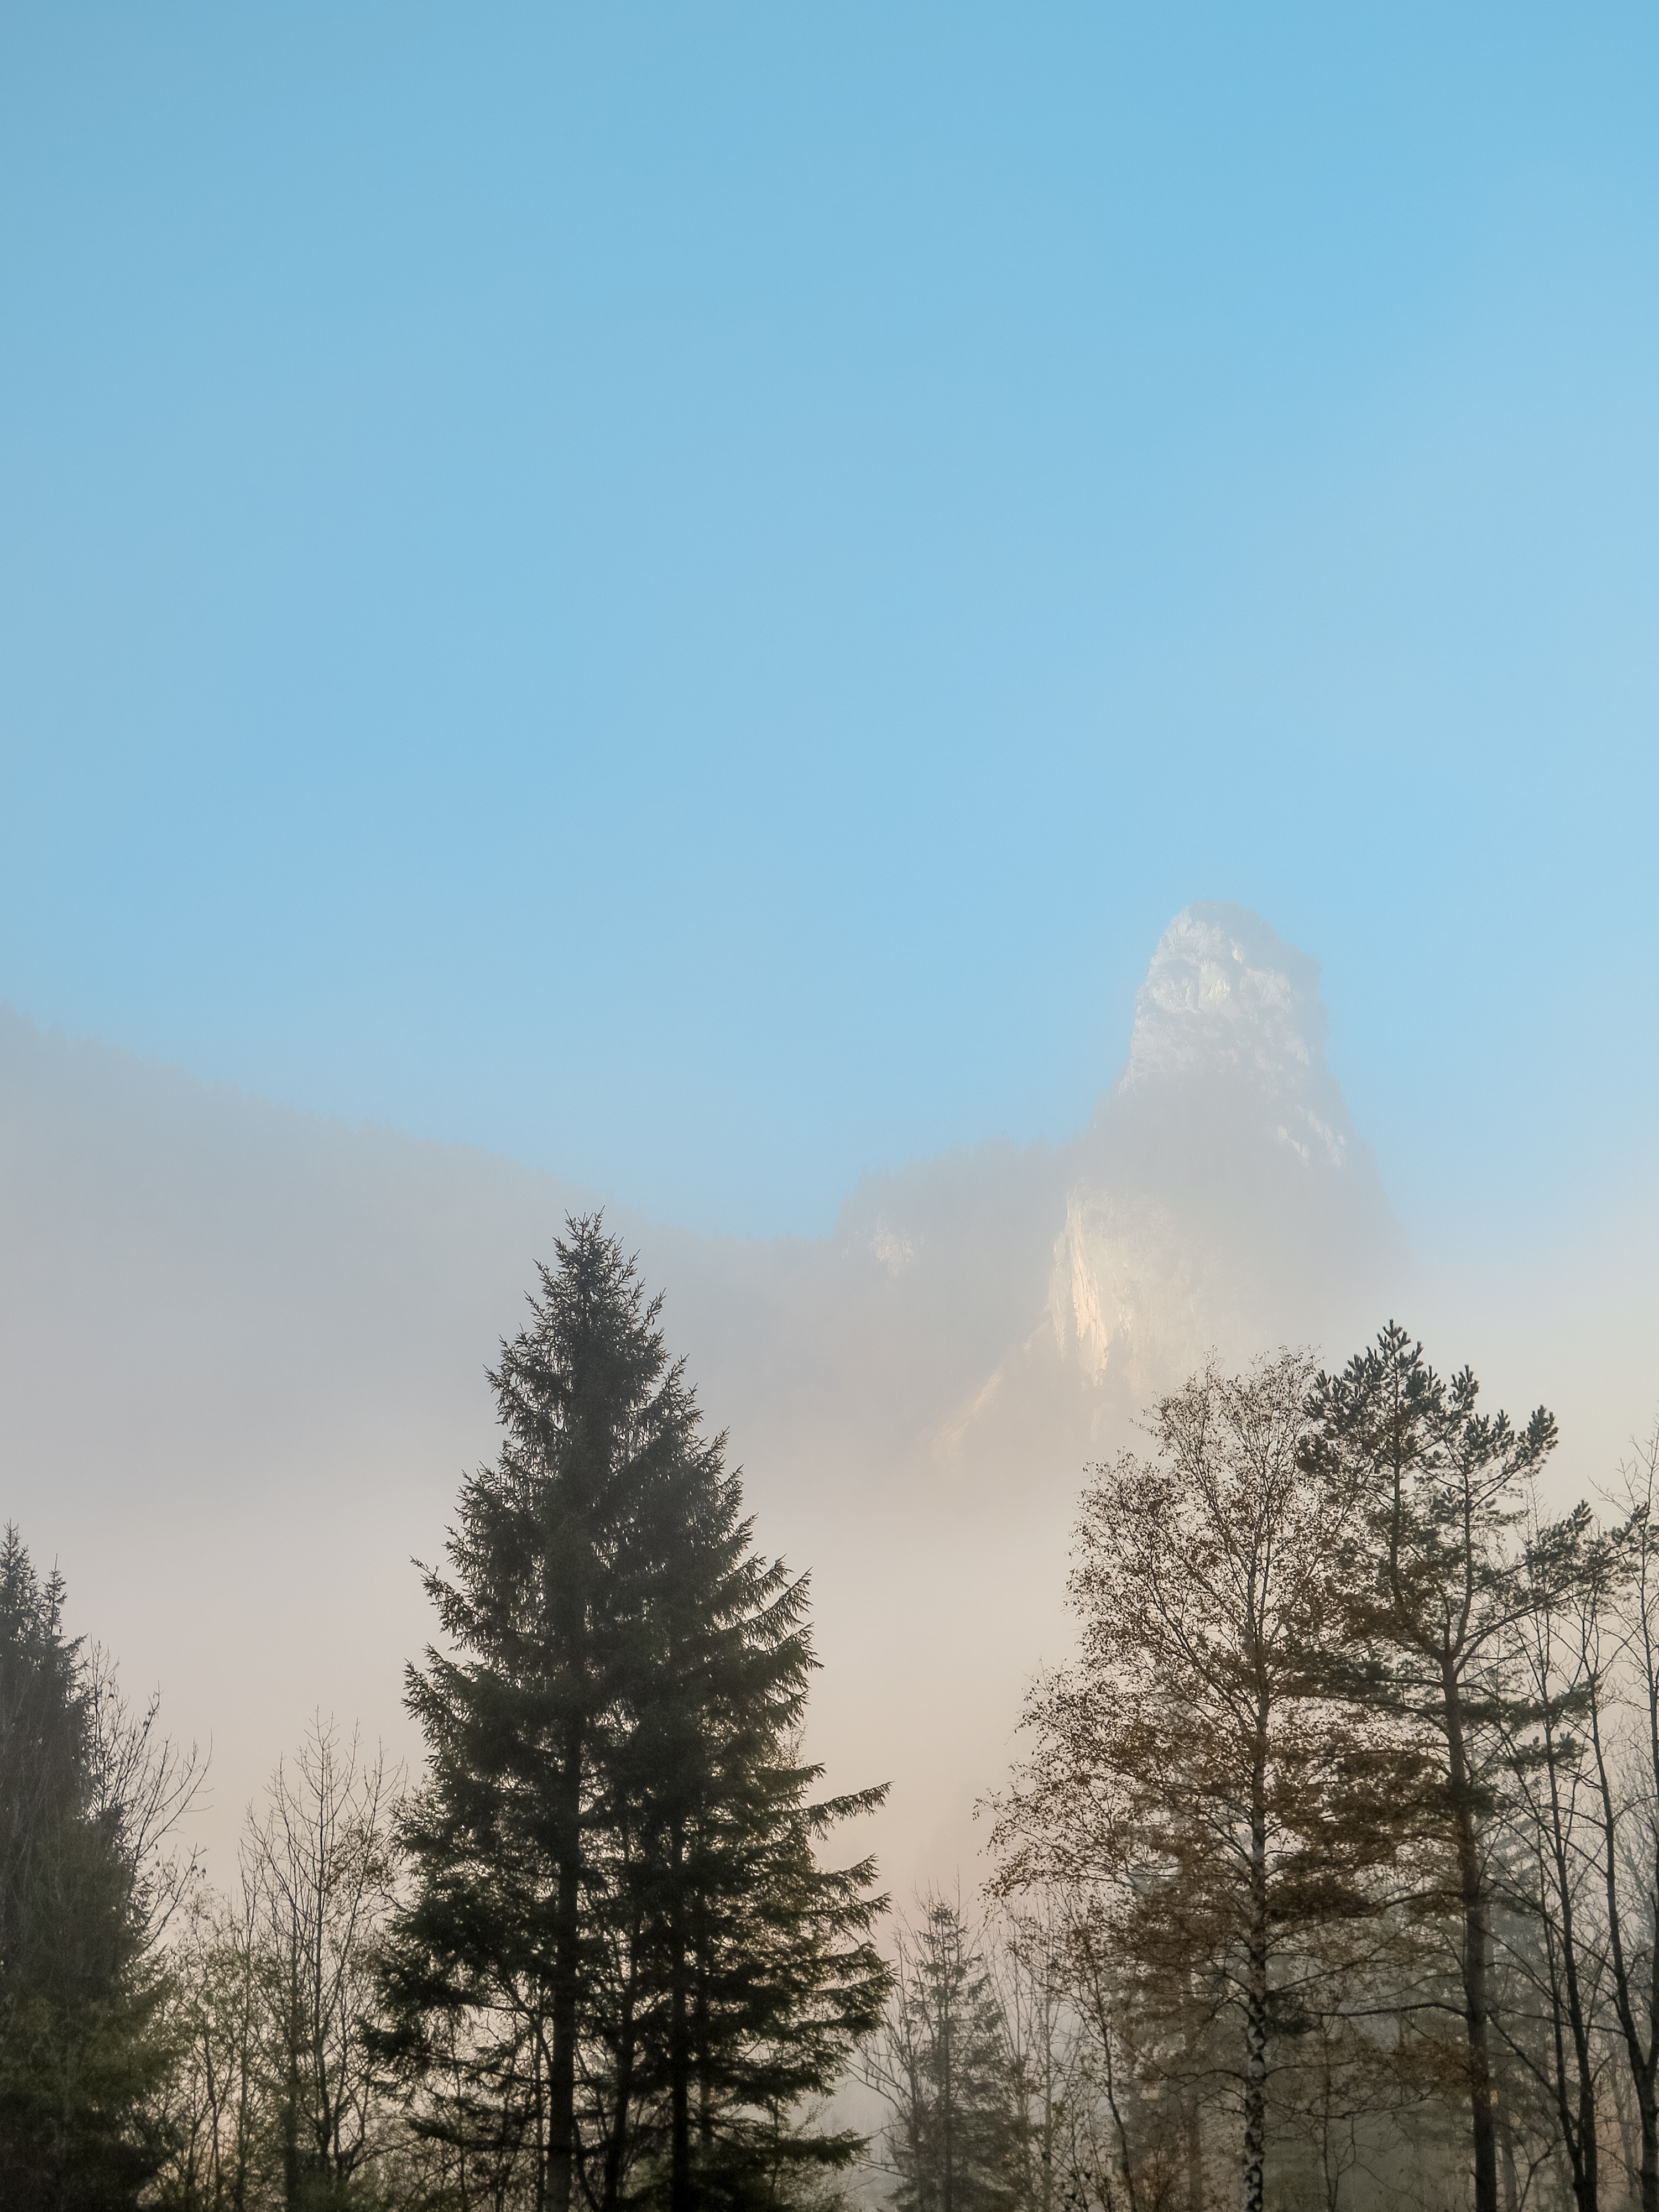 A tall mountain peak rising up above a mist-shrouded forest